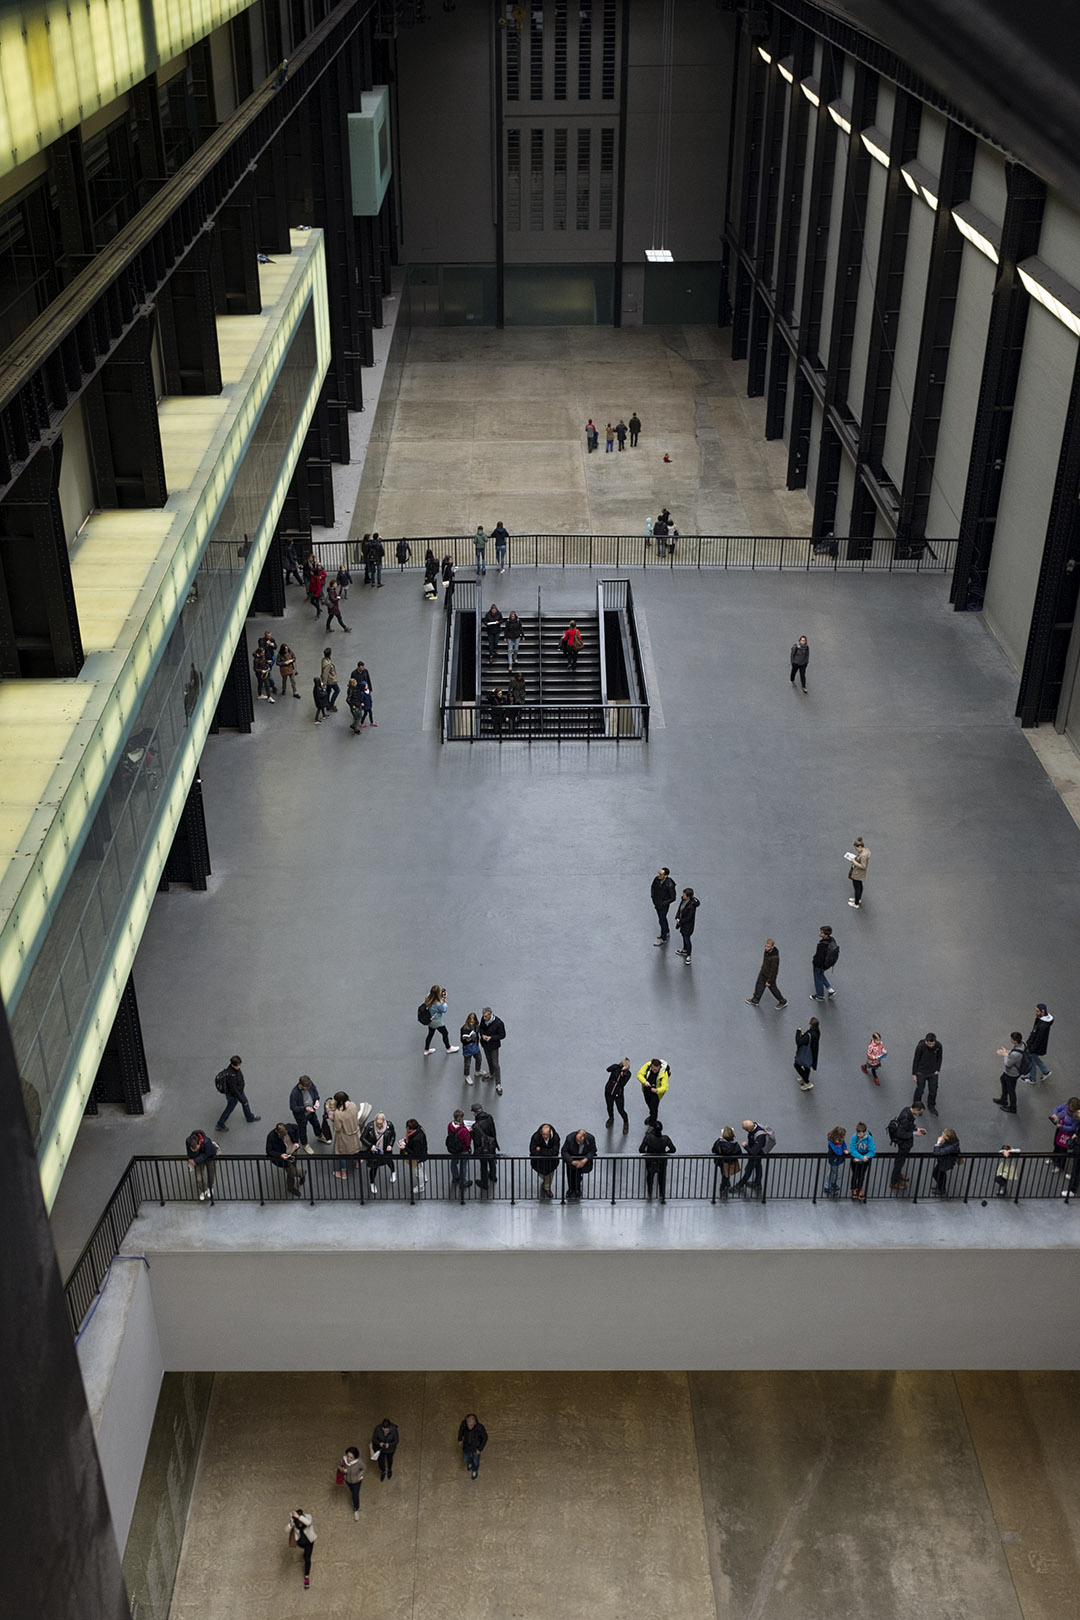 London Tate Modern interior